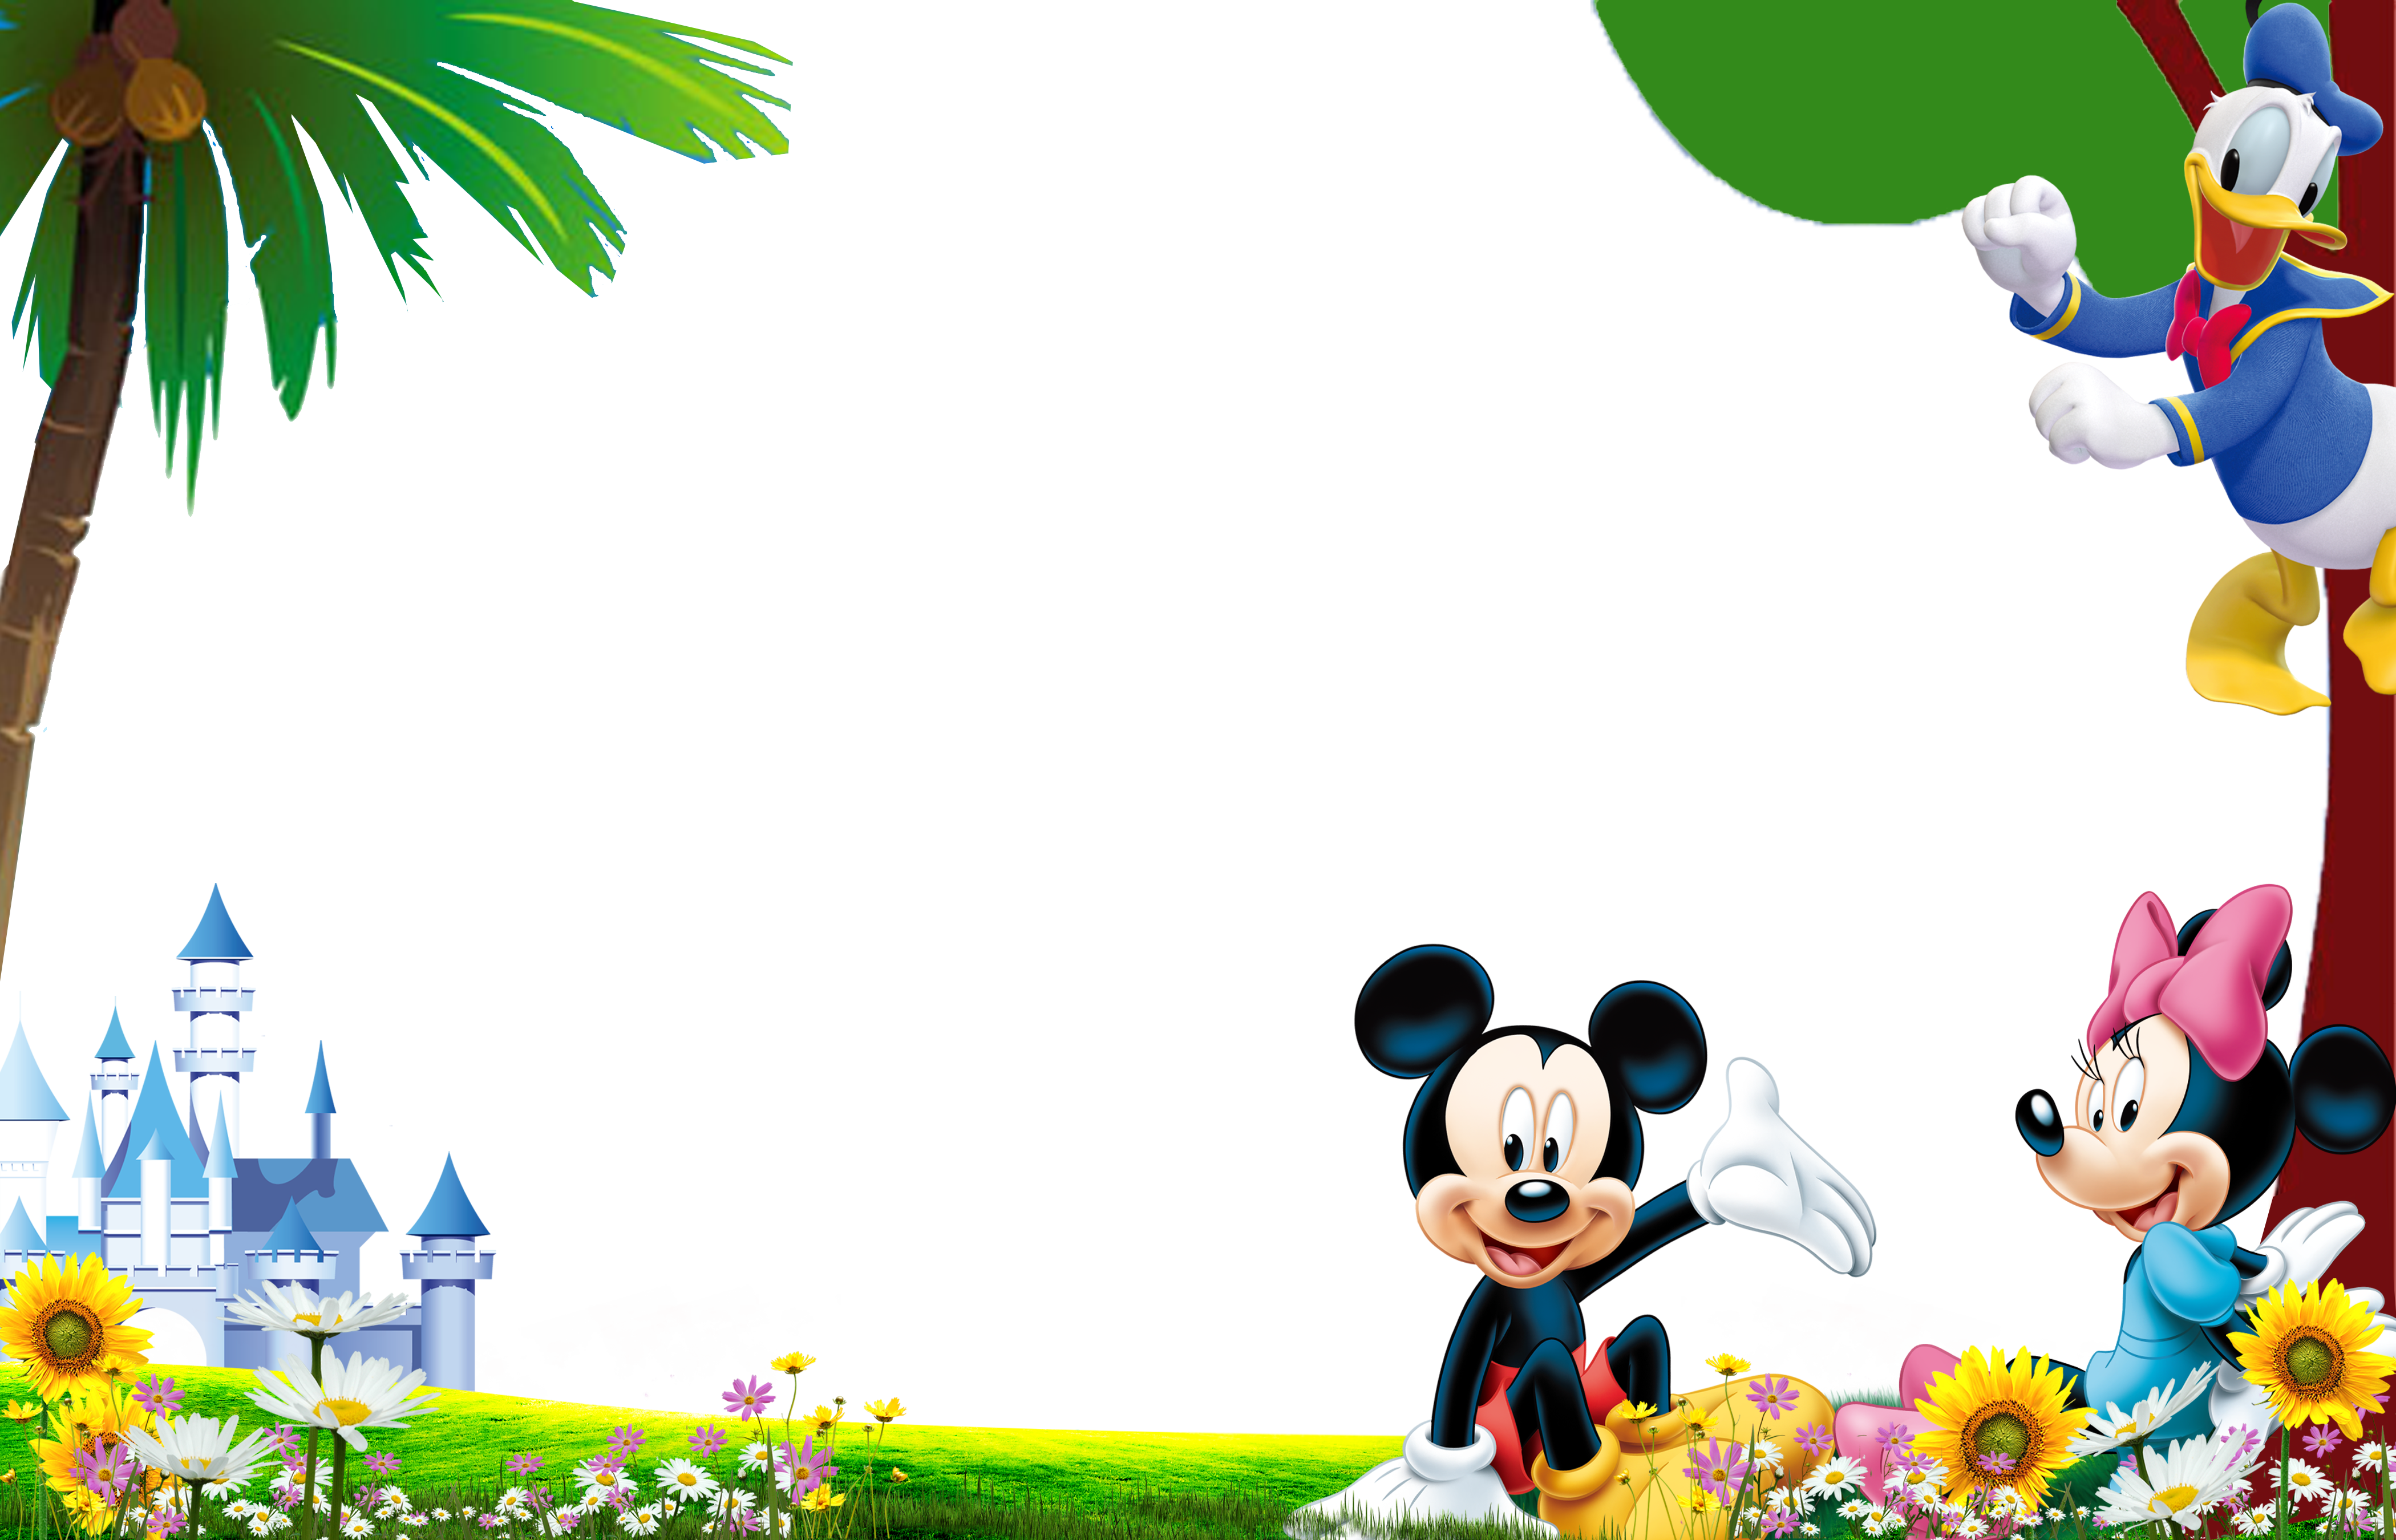 Mickey mouse background png. Cartoon the walt disney